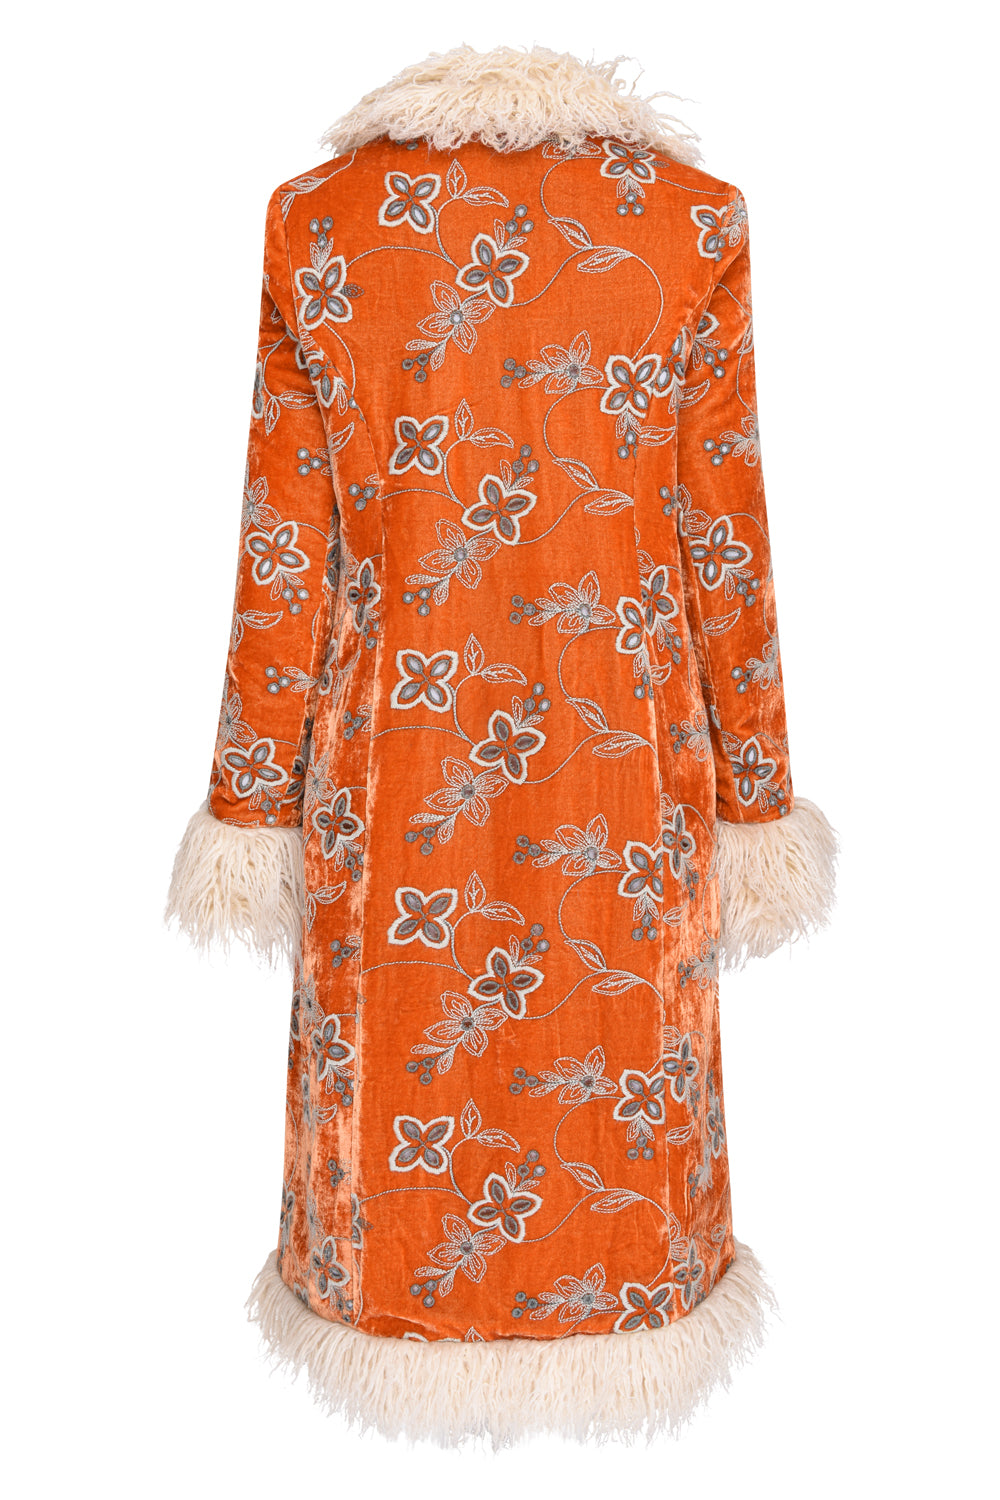 HIMALIA - ORANGE EMBROIDERED VELVET x BROWN CORD